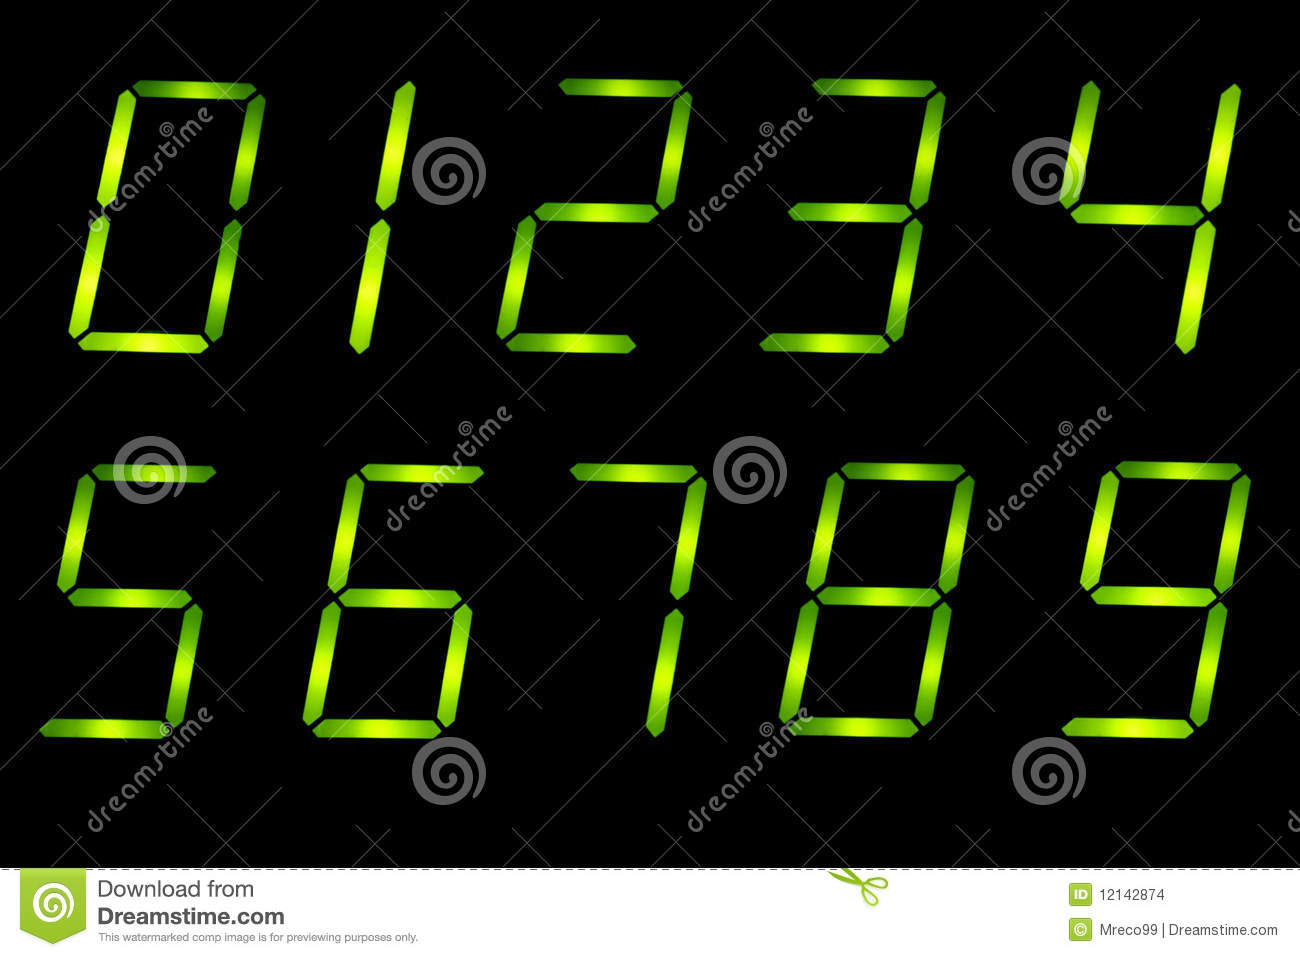 LED numbers font 0-9 stock photo  Image of type, three - 12142874